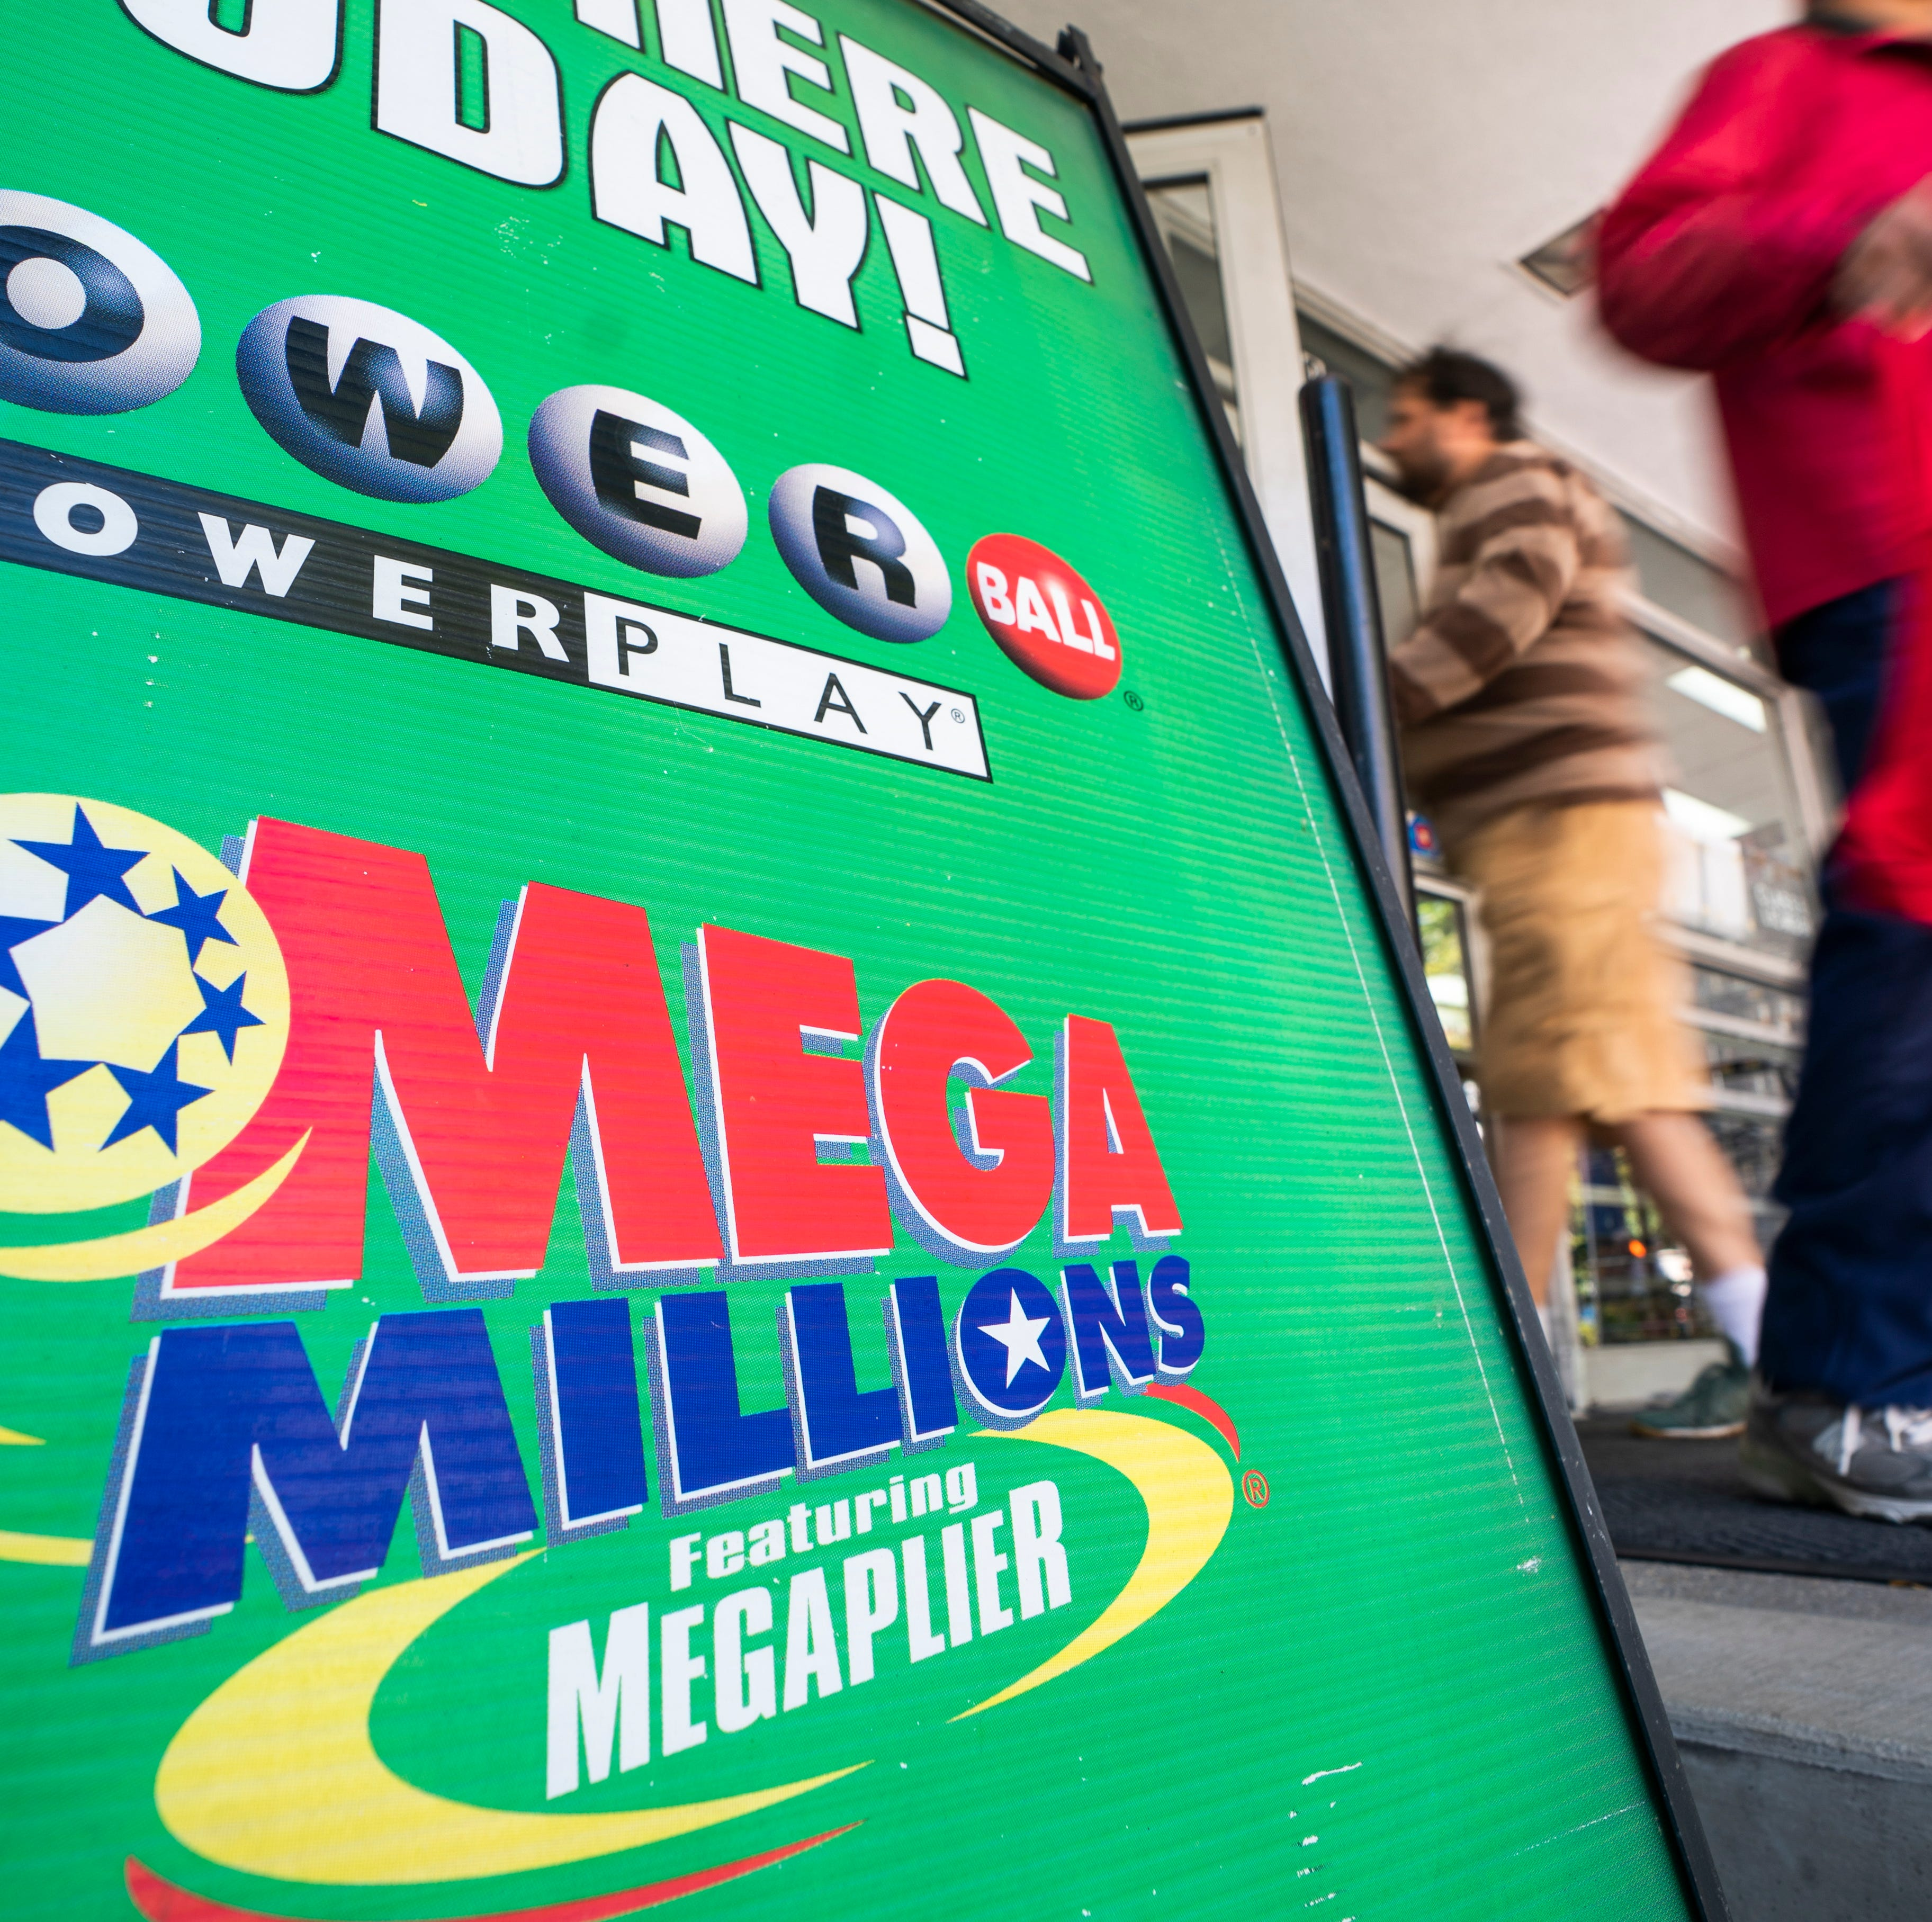 Lottery fever grips the nation as a whopping $1.4 billion is at stake